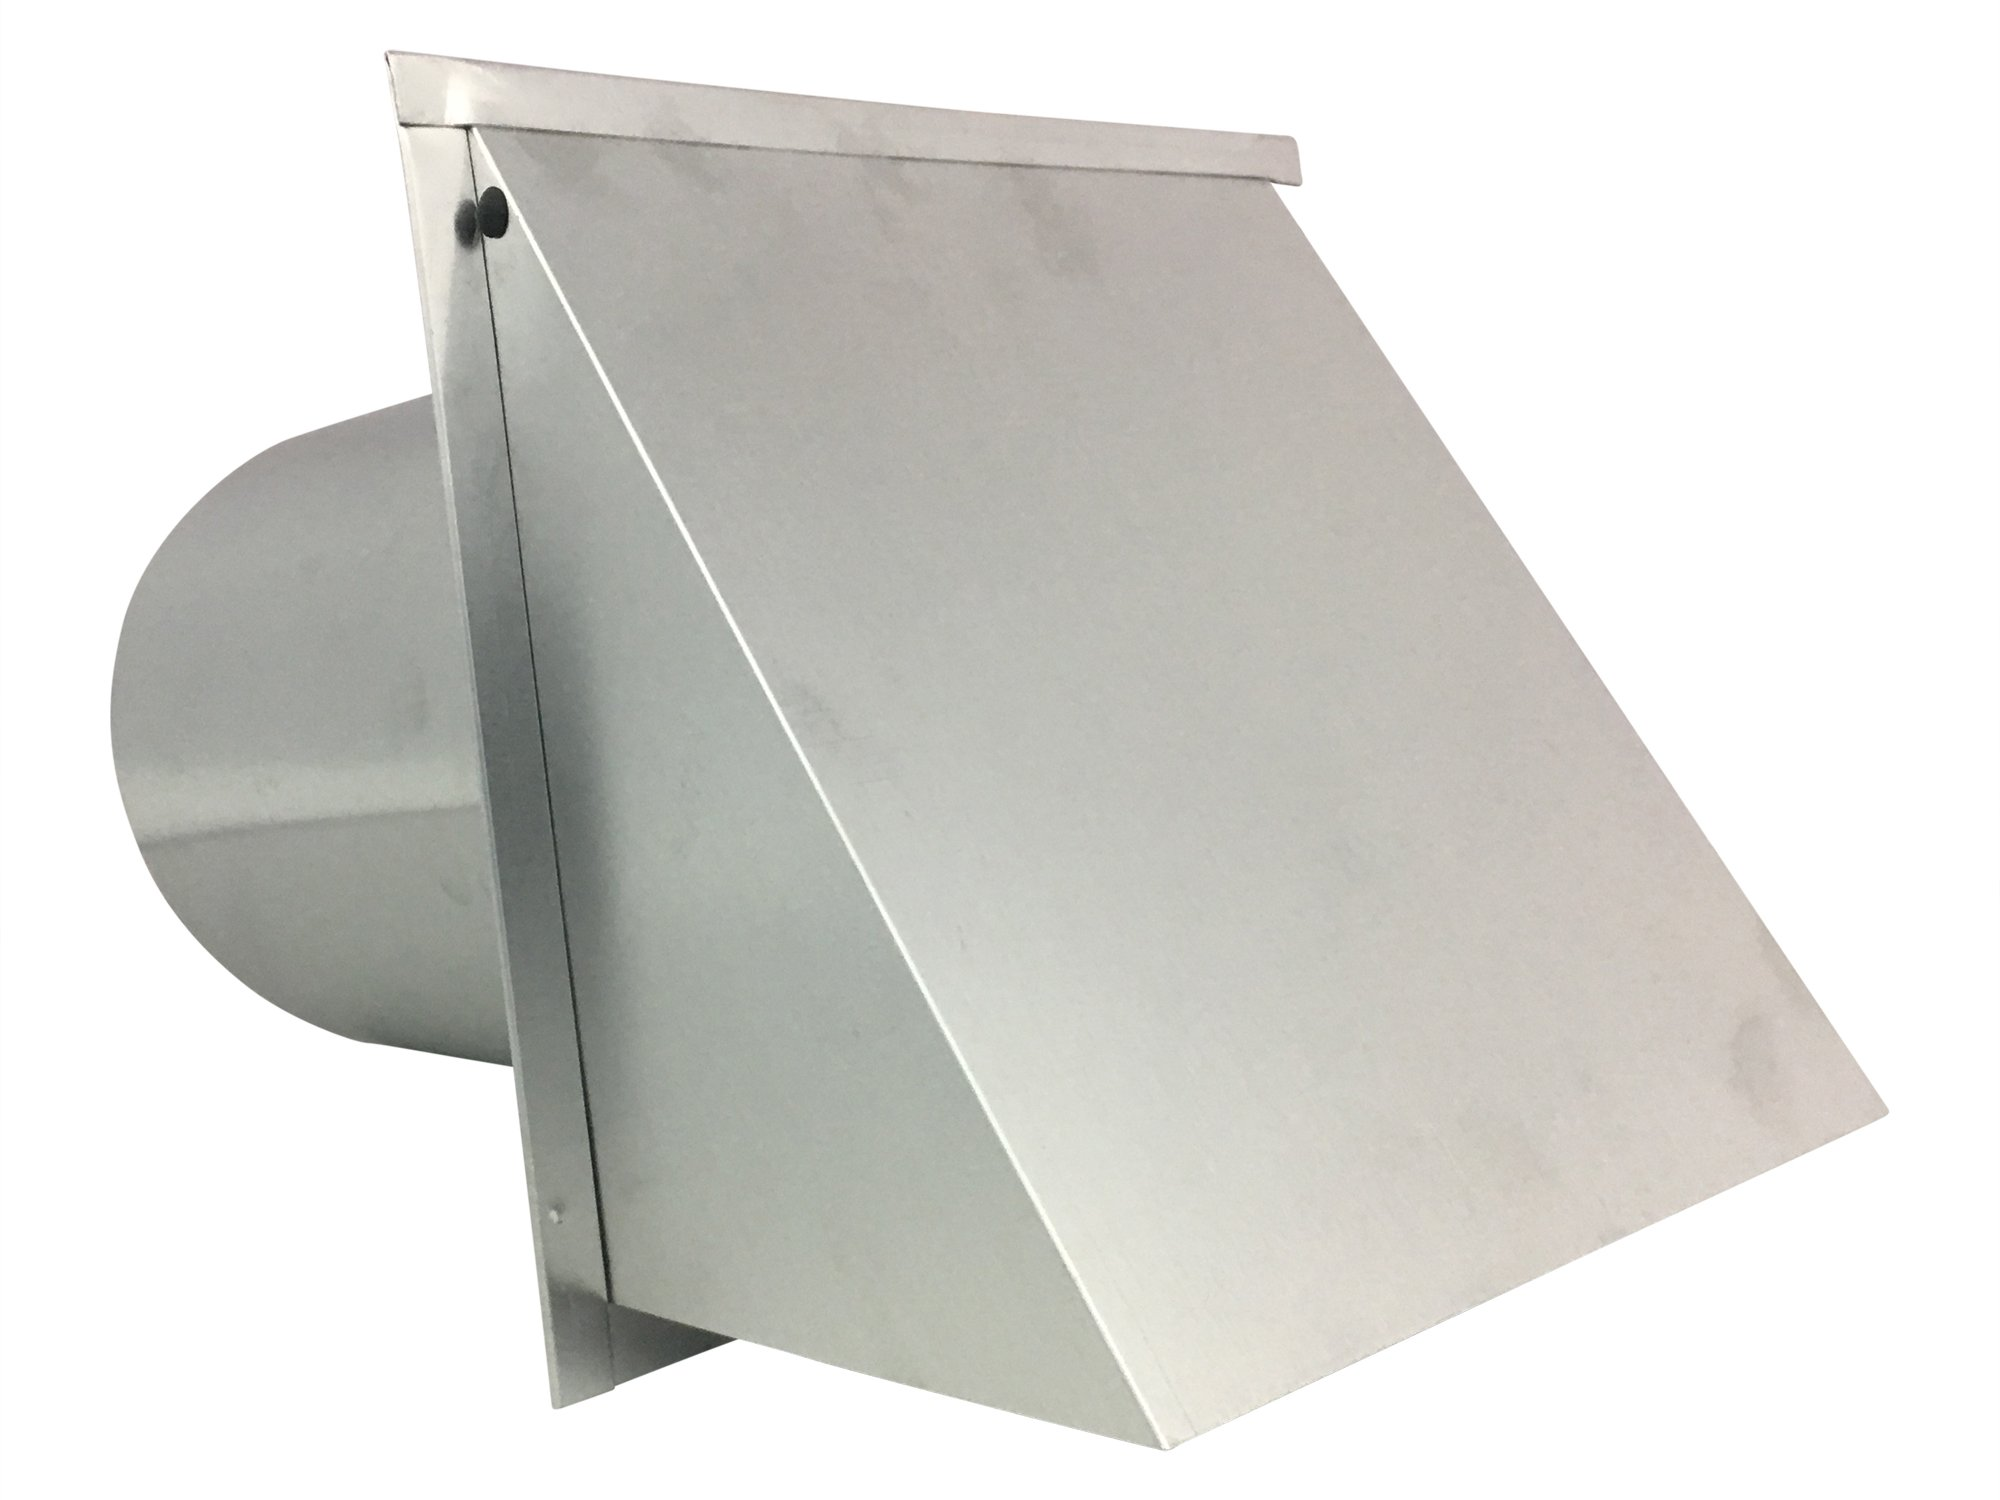 6 Inch Wall Vent Aluminum Screen Only (6 Inch Diameter) - Vent Works